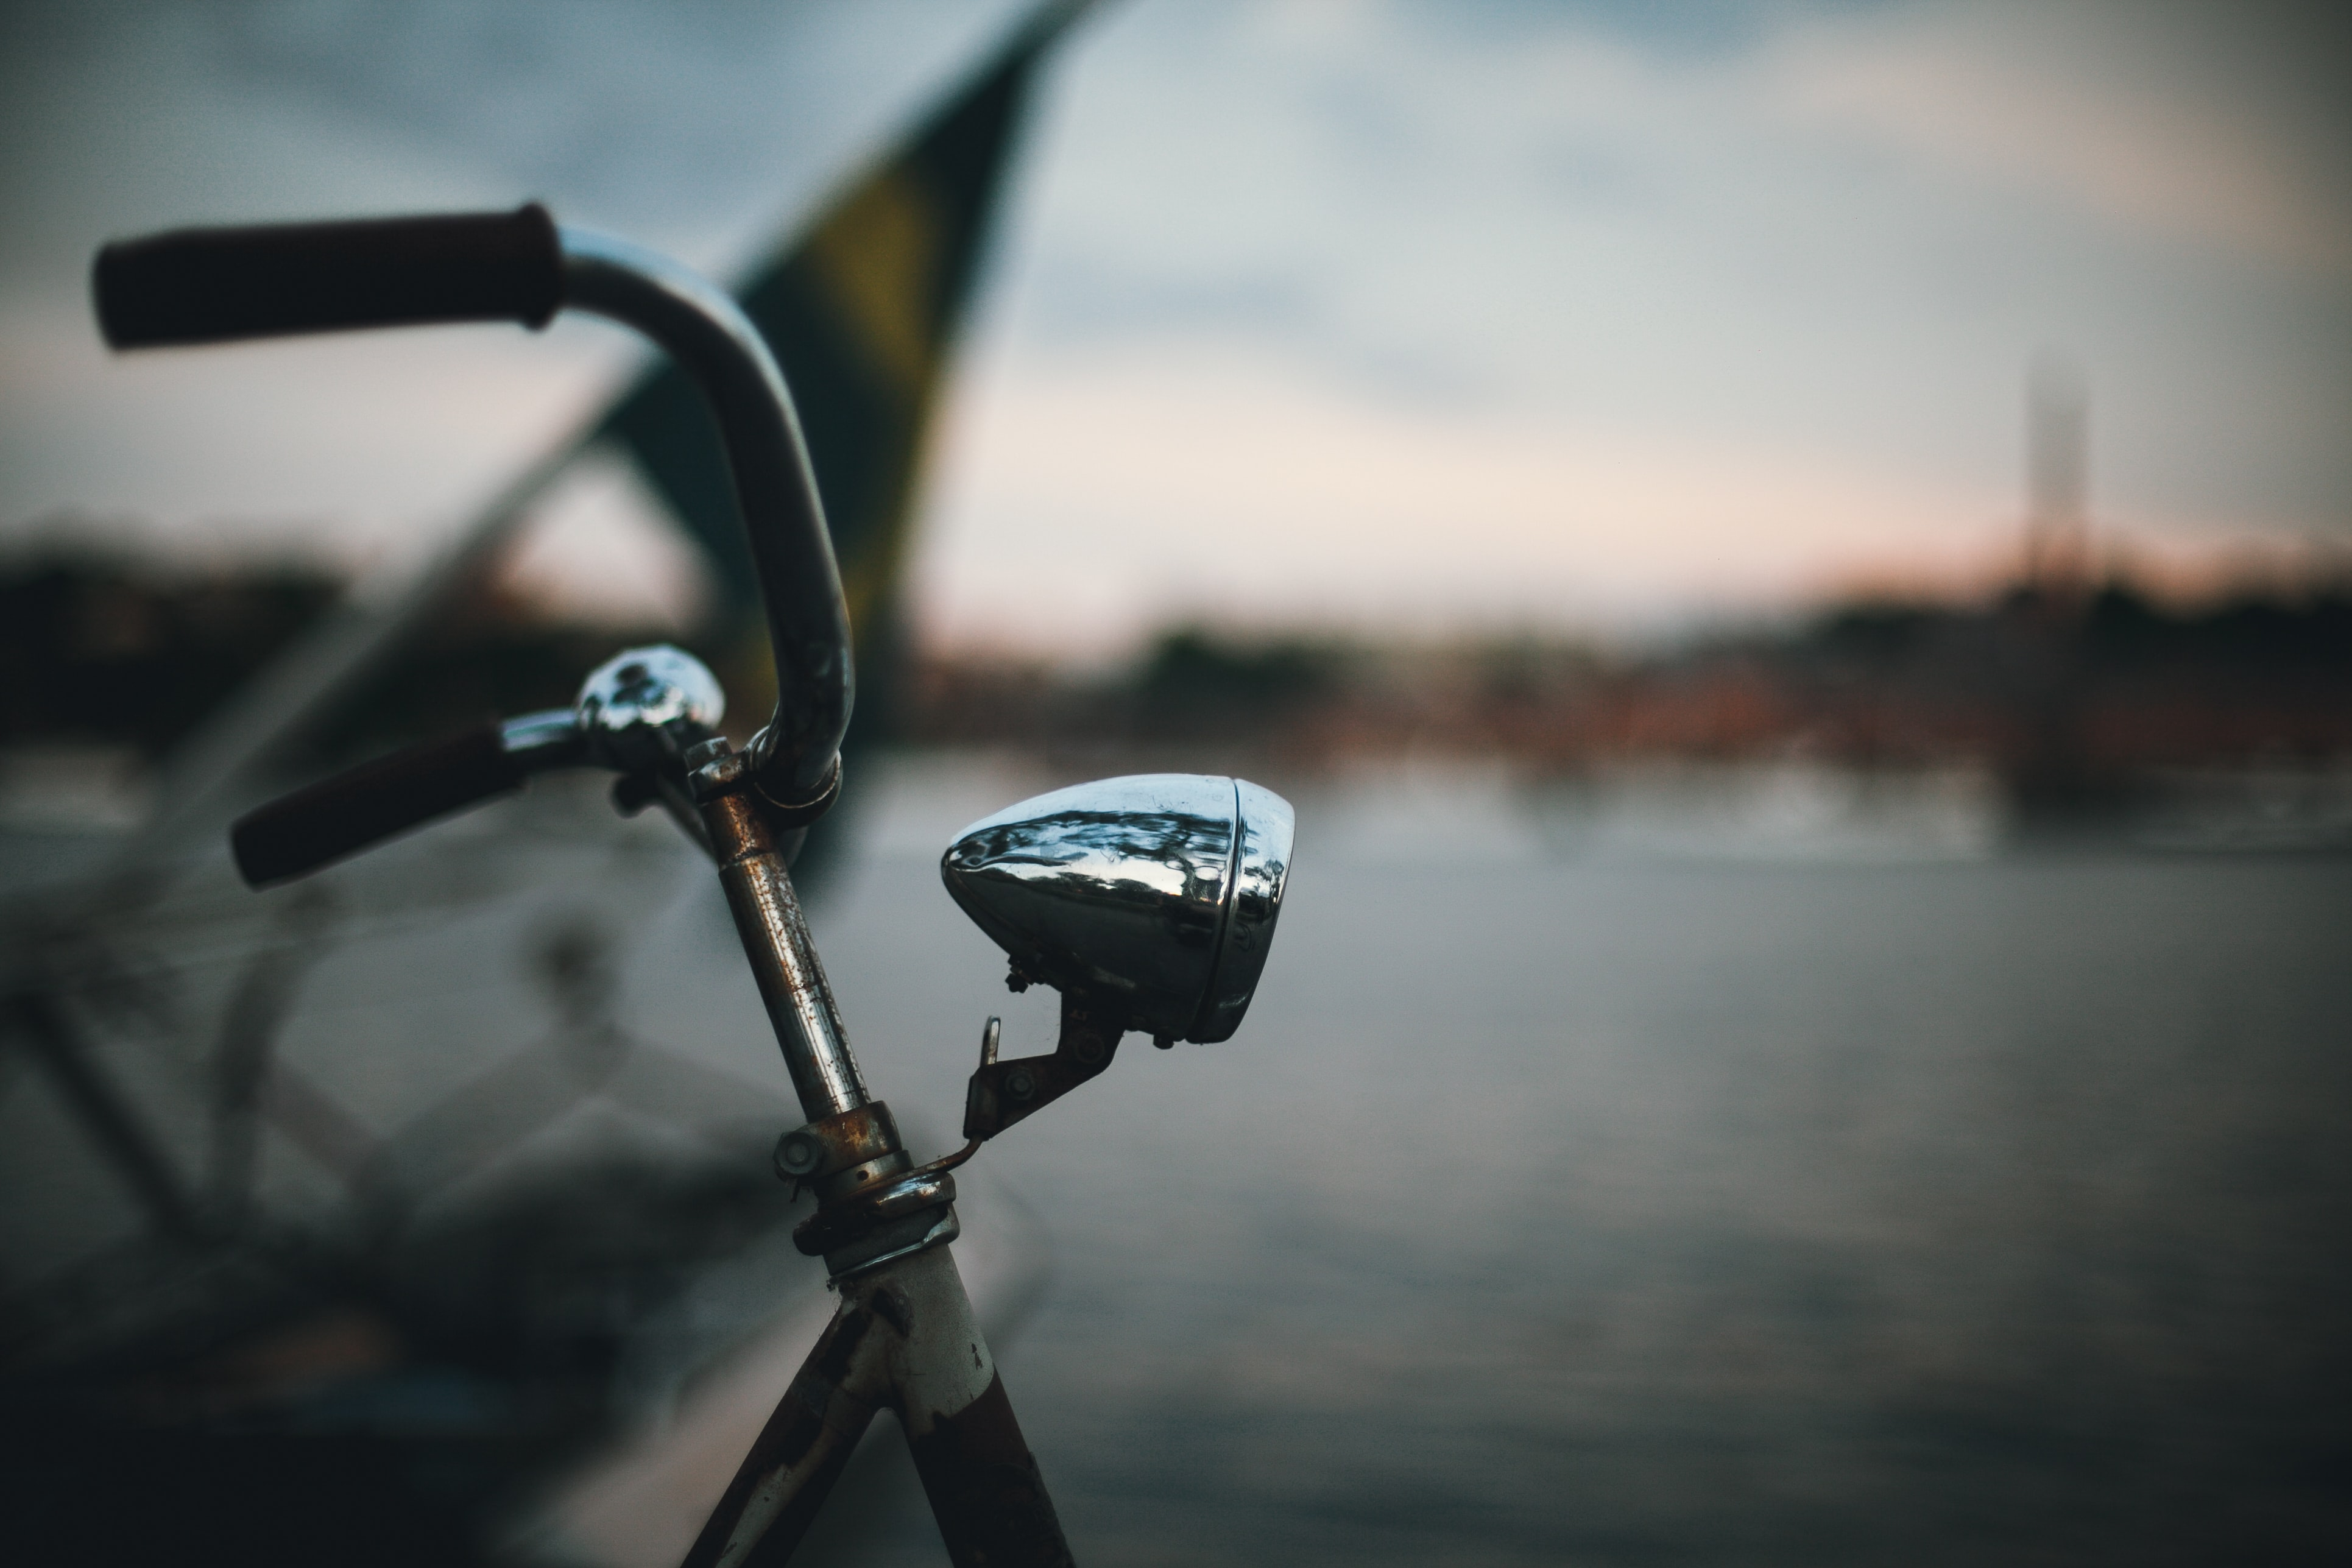 shallow focus lens photo of bicycle